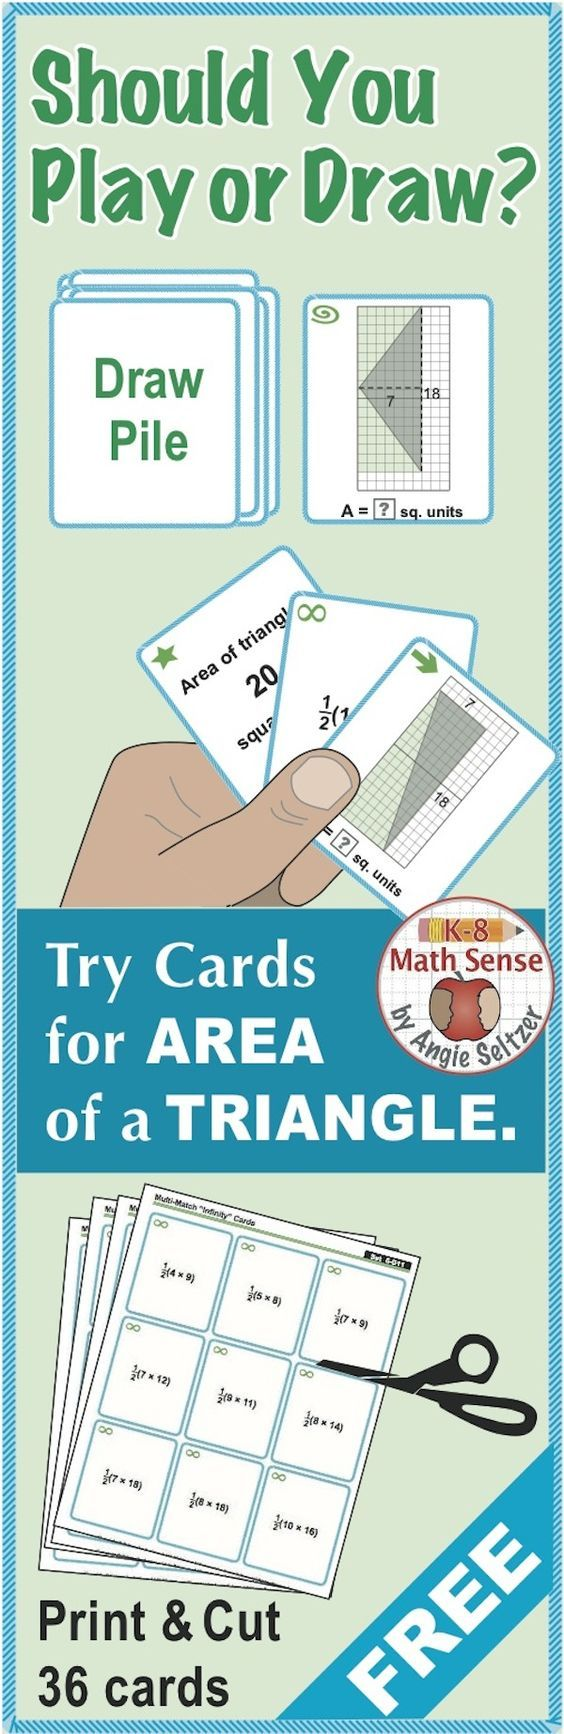 63 best Grade 6 Math Activities images on Pinterest | Math ...